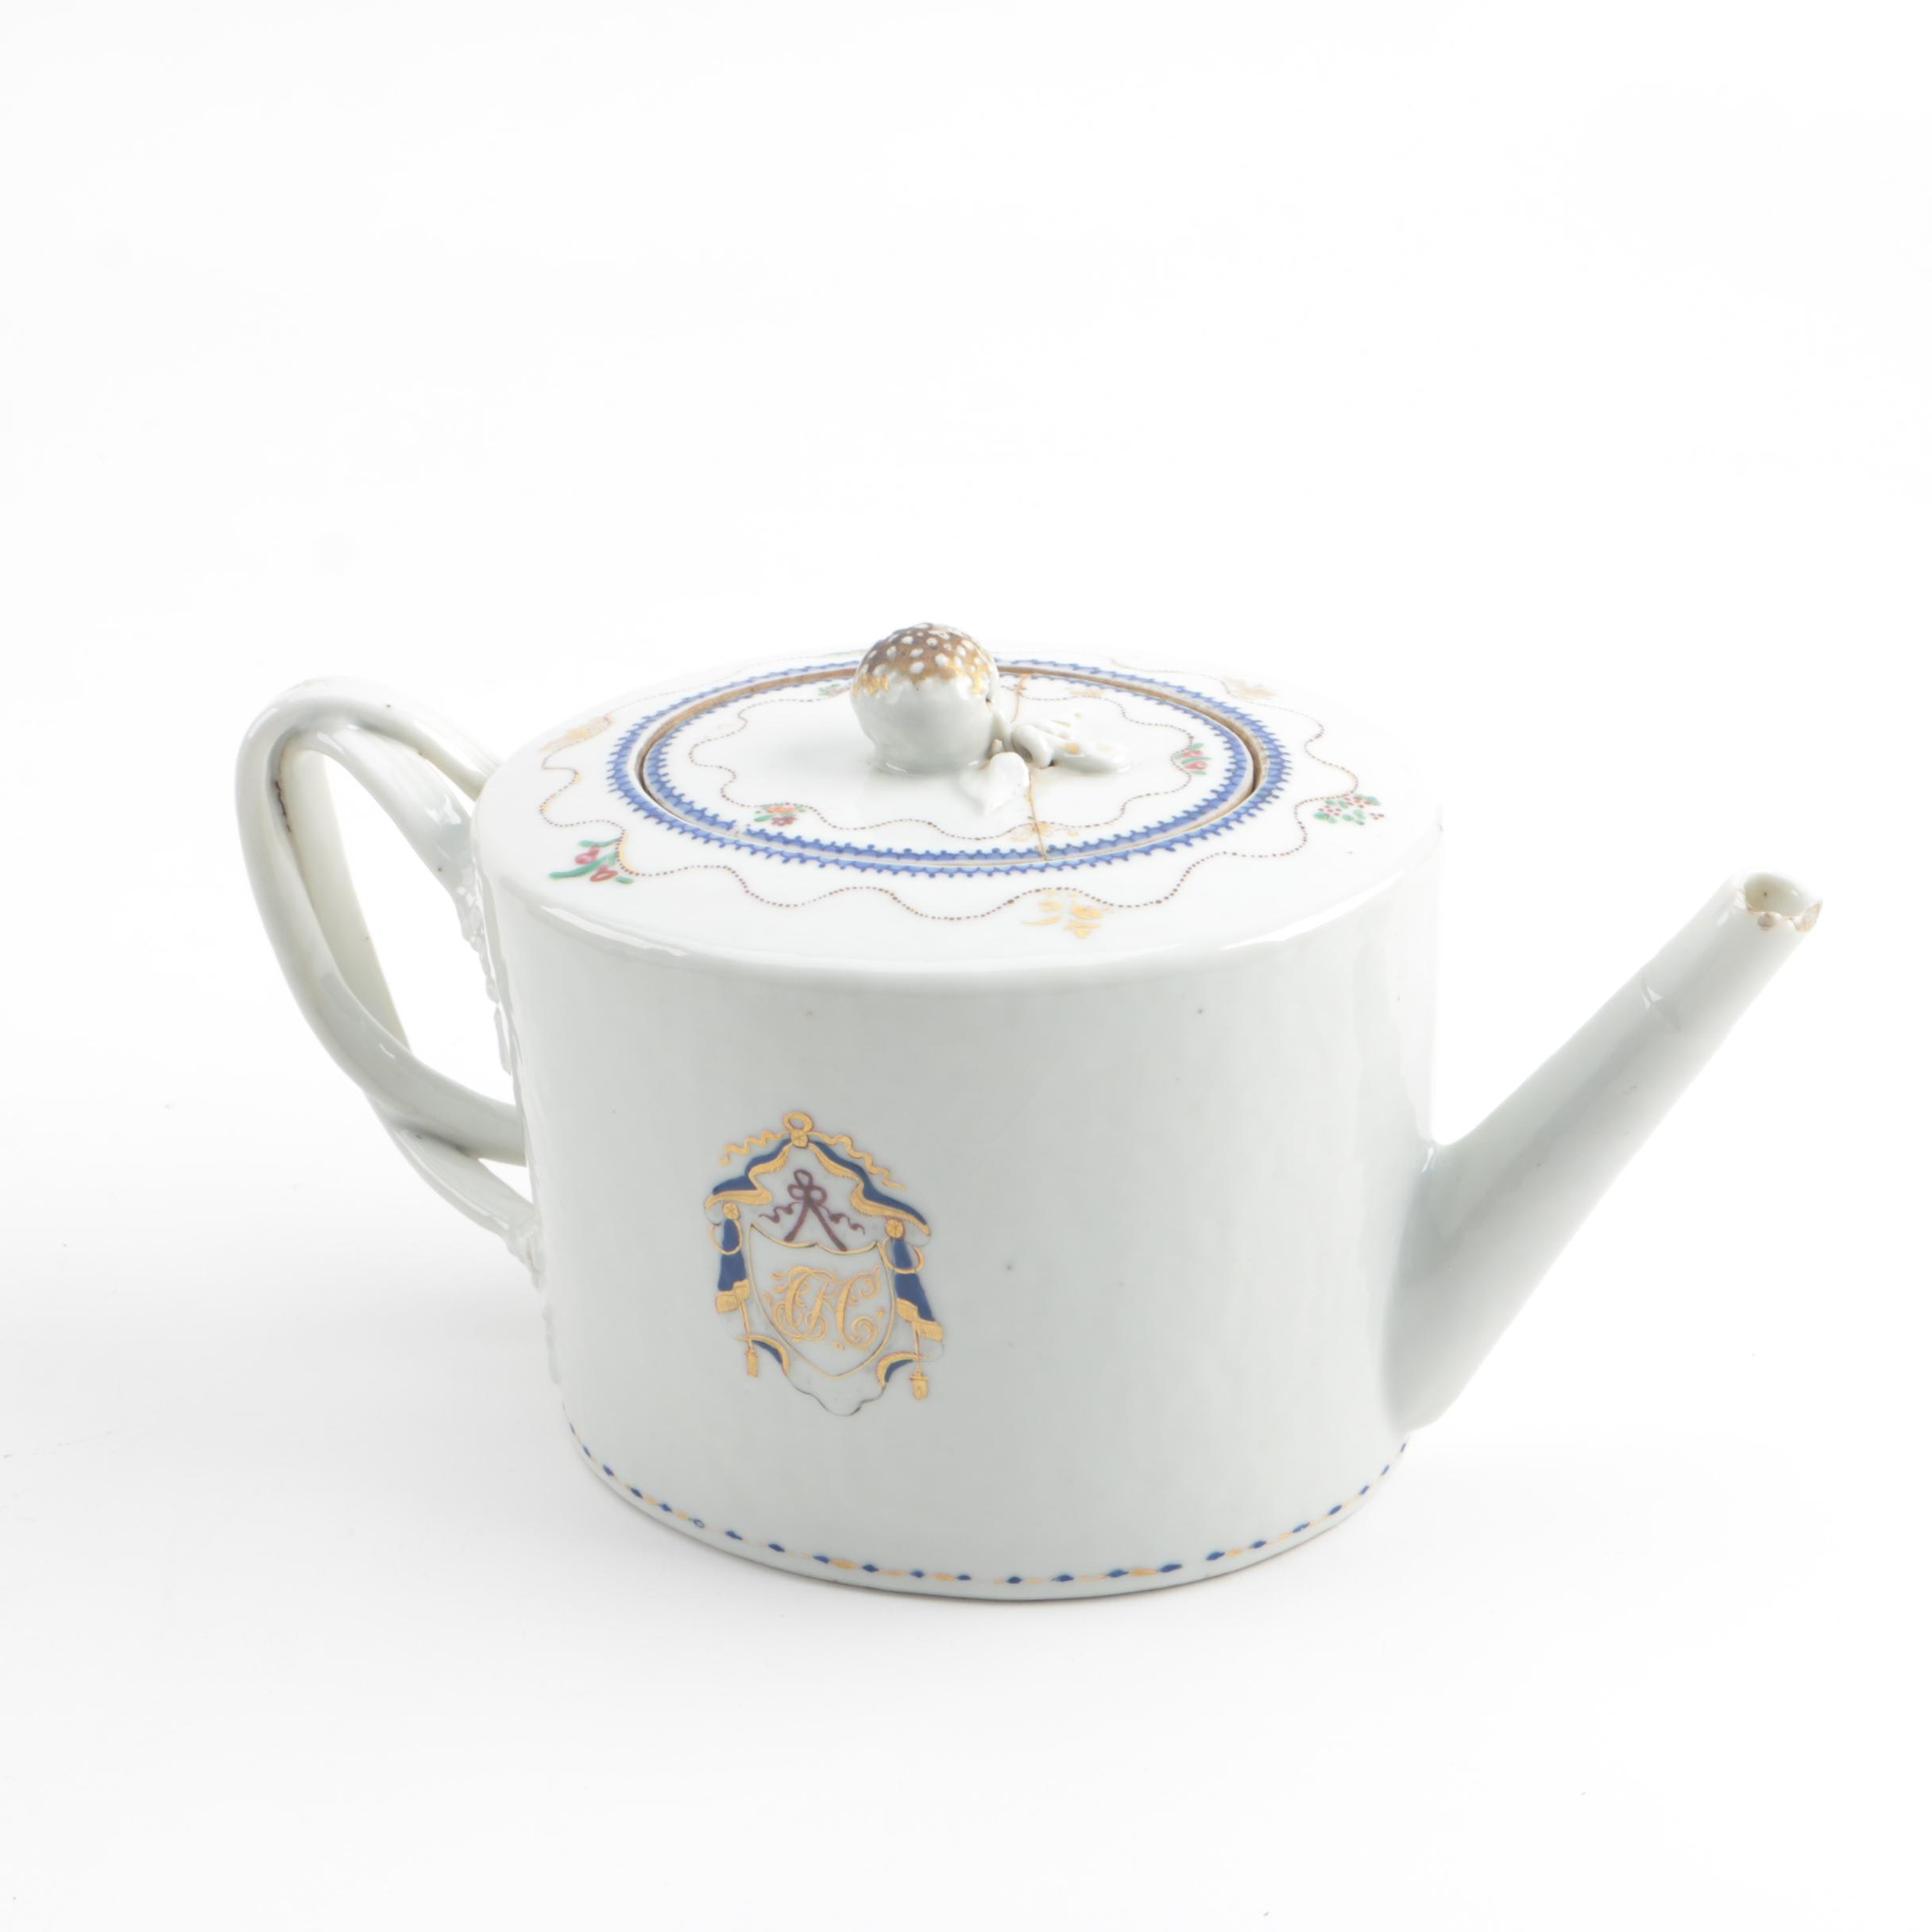 18th Century Chinese Export Monogramed Porcelain Teapot